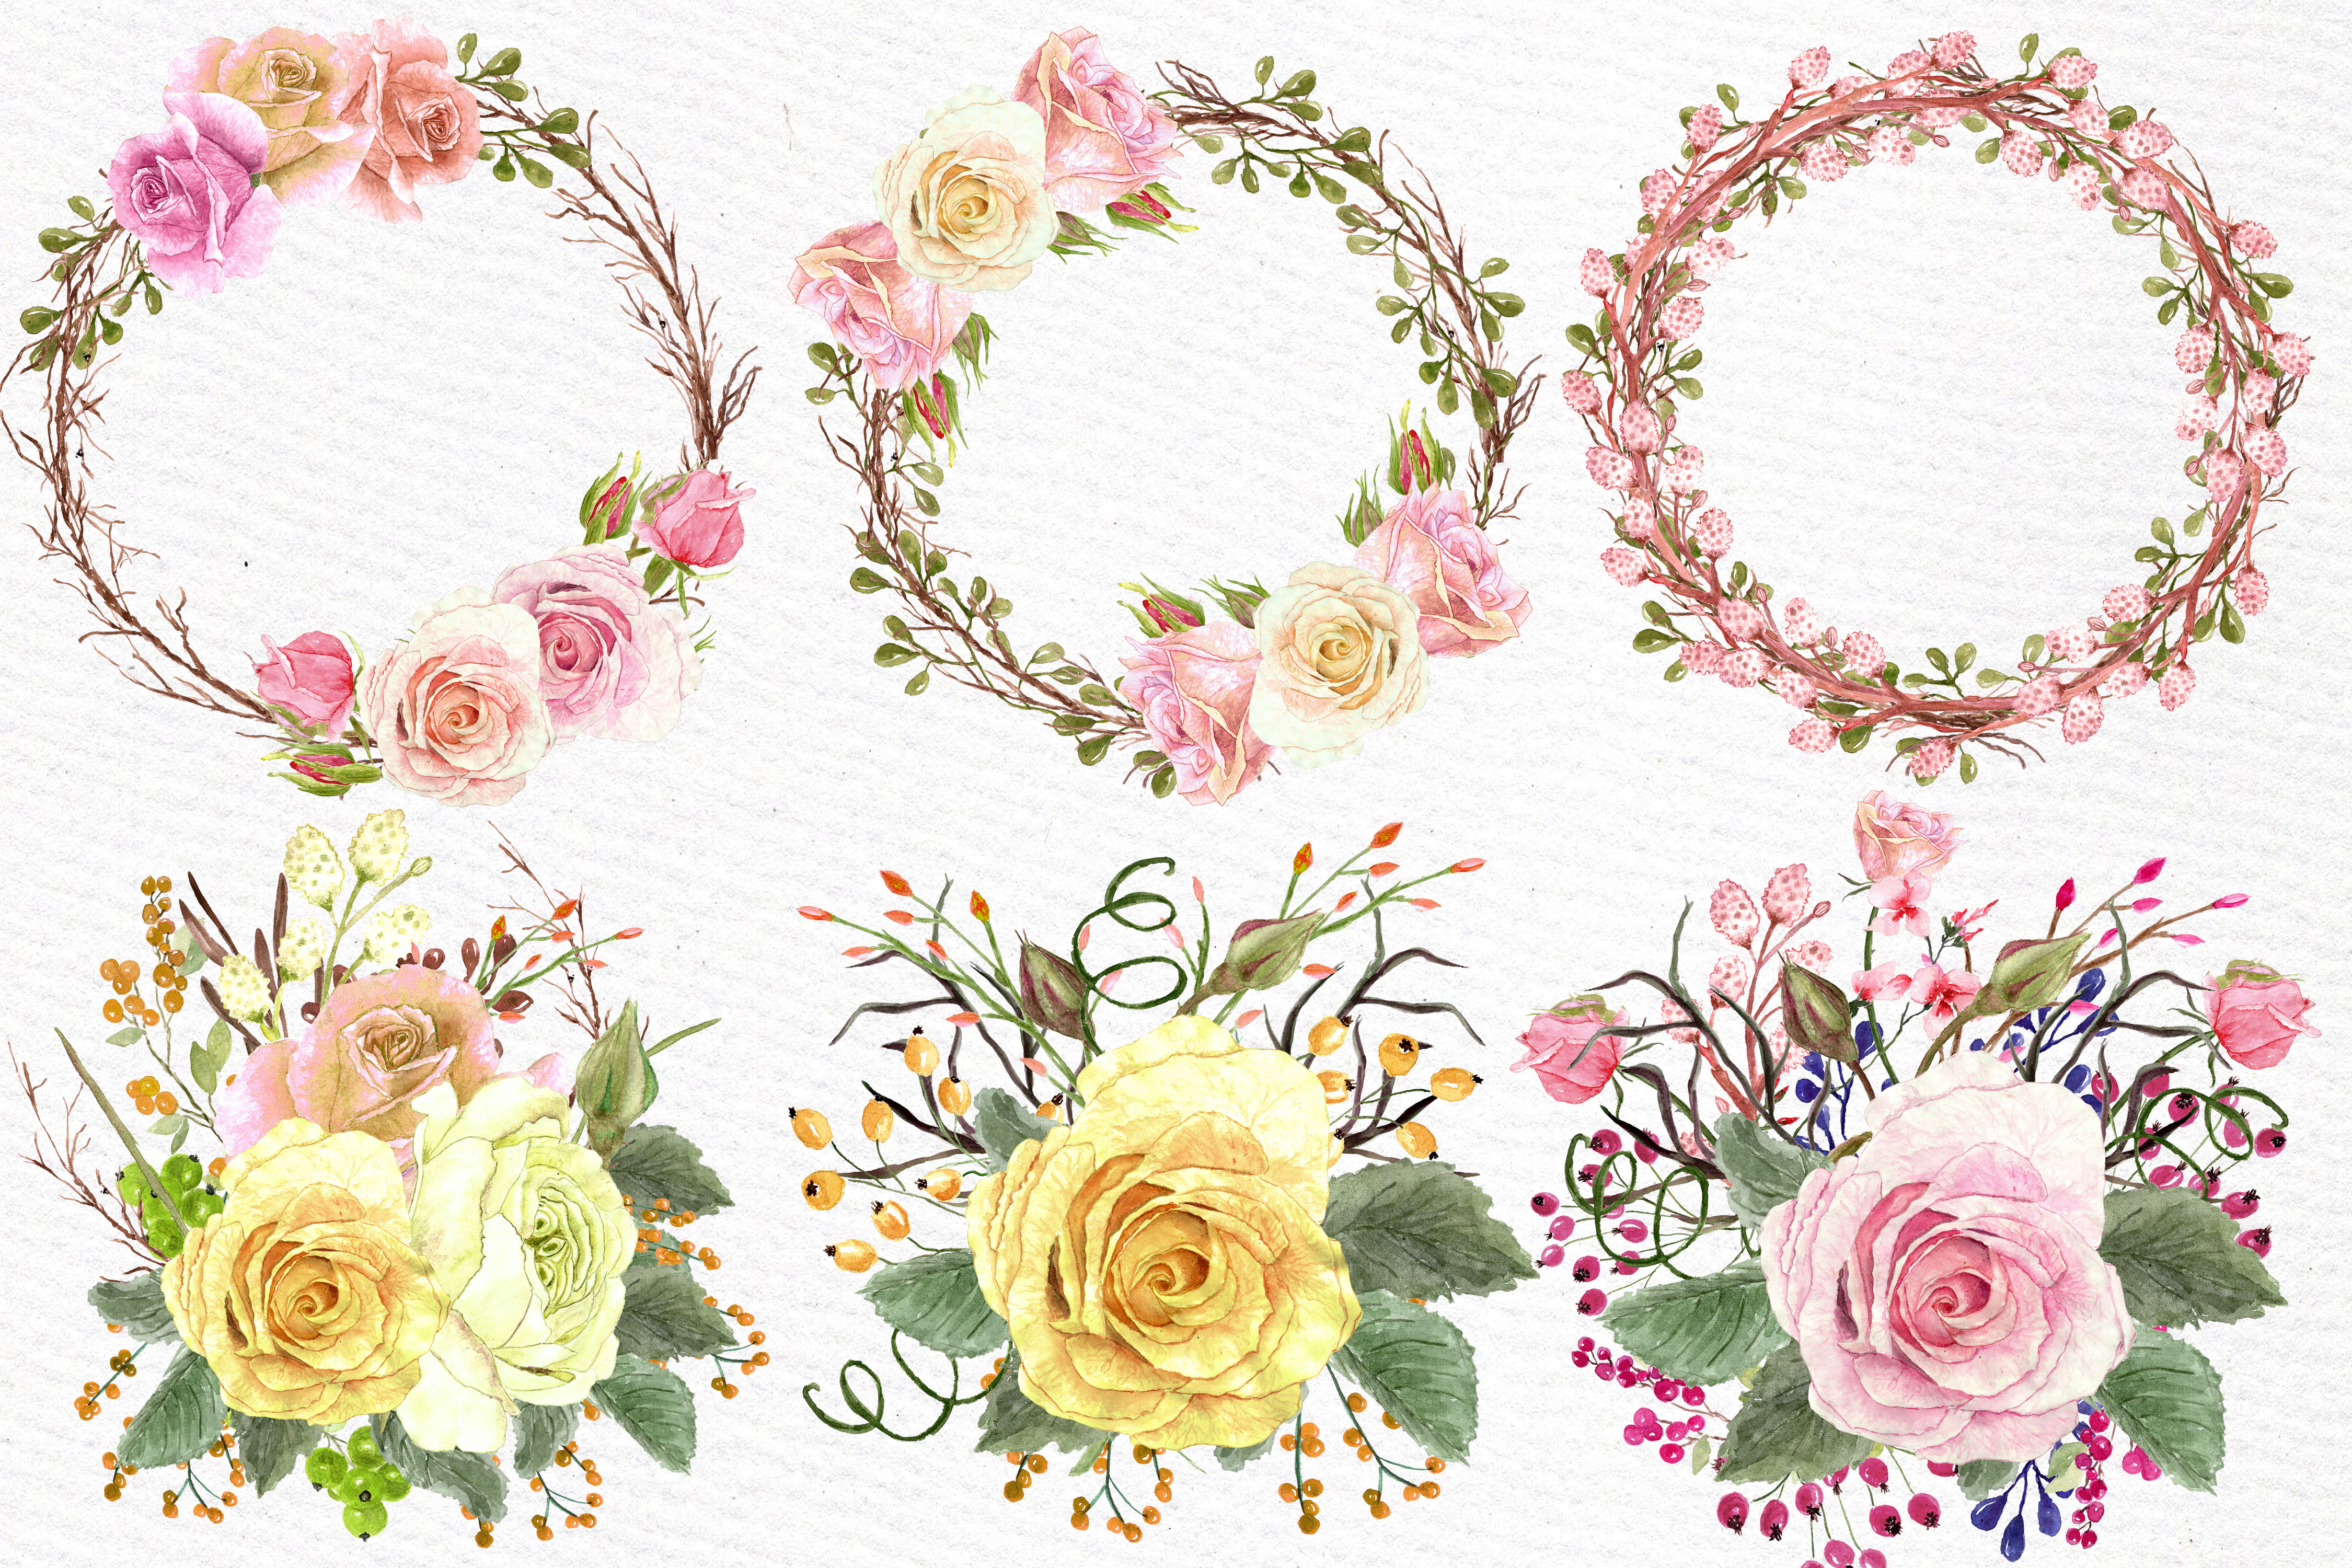 Watercolor roses clipart example image 3